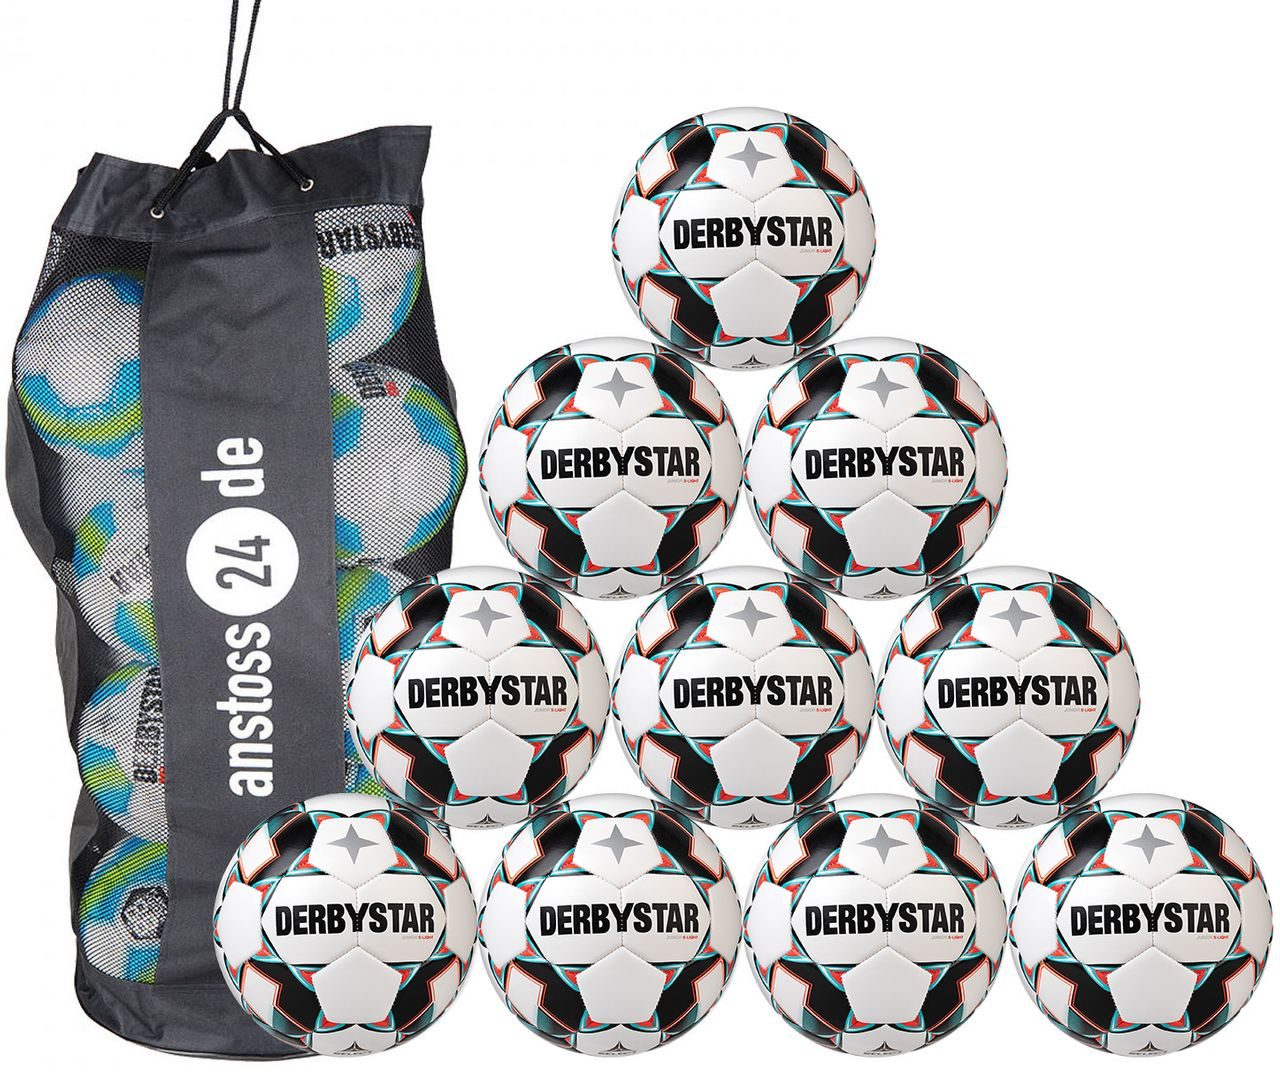 10 x DERBYSTAR Jugendball - JUNIOR S-LIGHT inkl. Ballsack